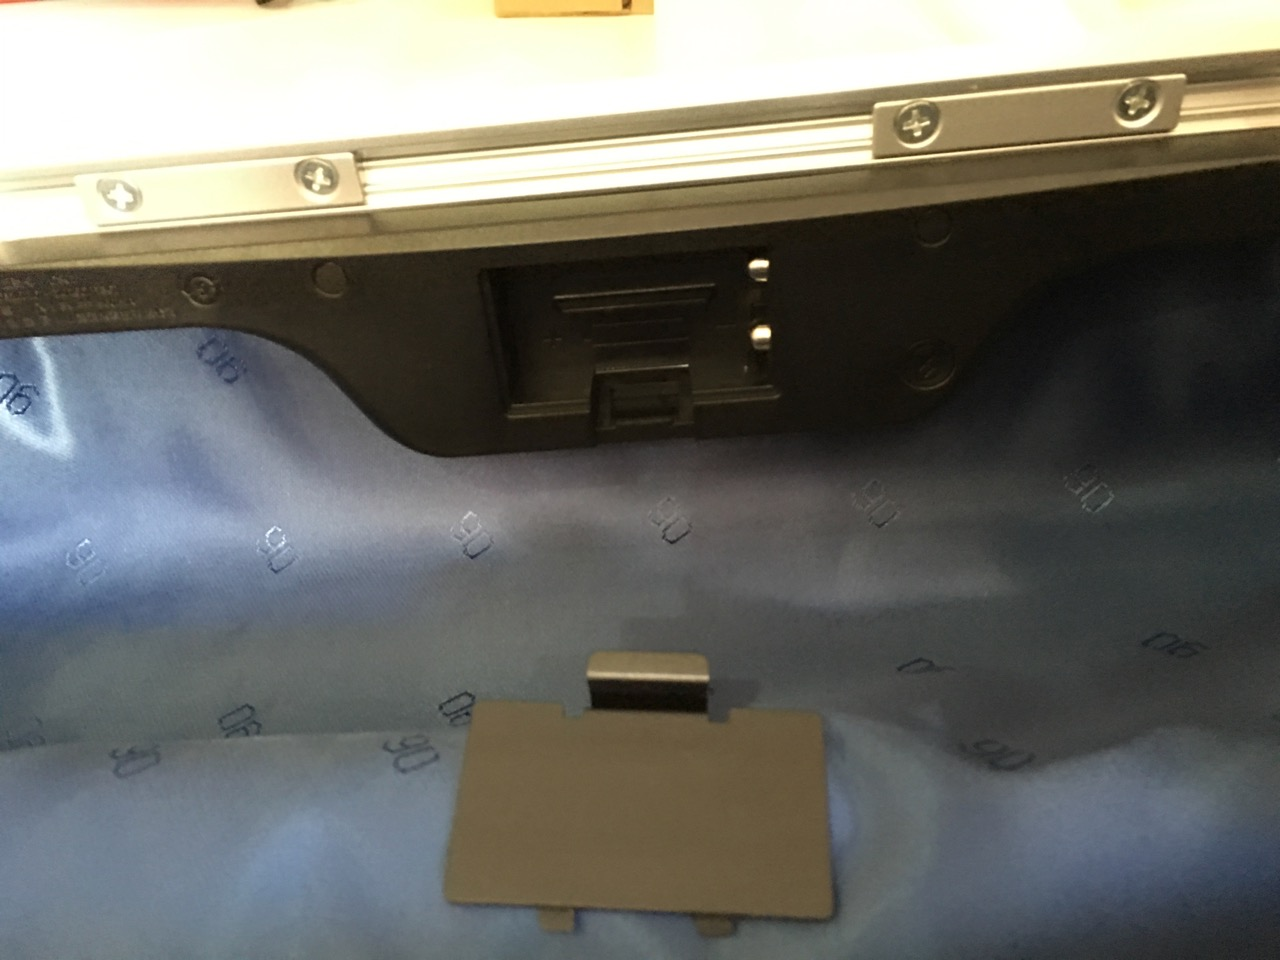 xiaomi-mi-90-smart-metal-luggage-suitcase-battery-compartment